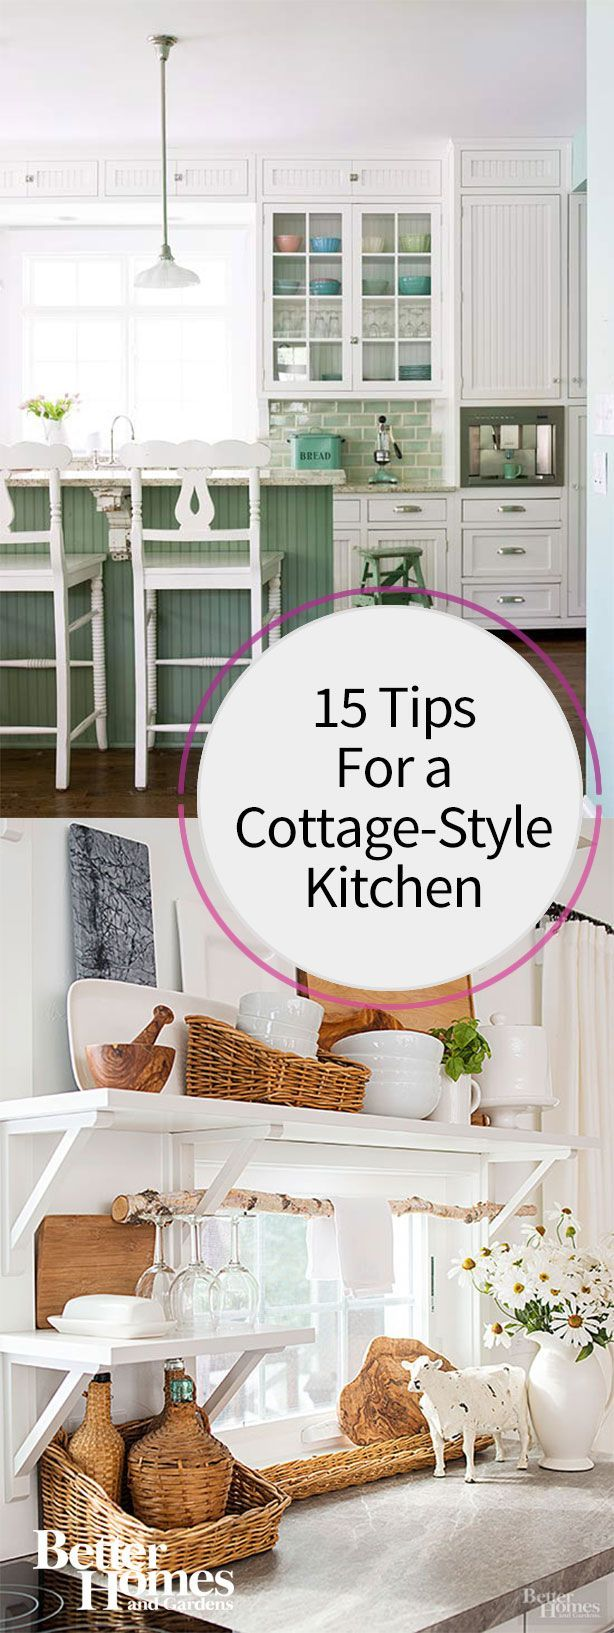 best 25 cottage style kitchens ideas only on pinterest cottage 15 tips for a cottage style kitchen